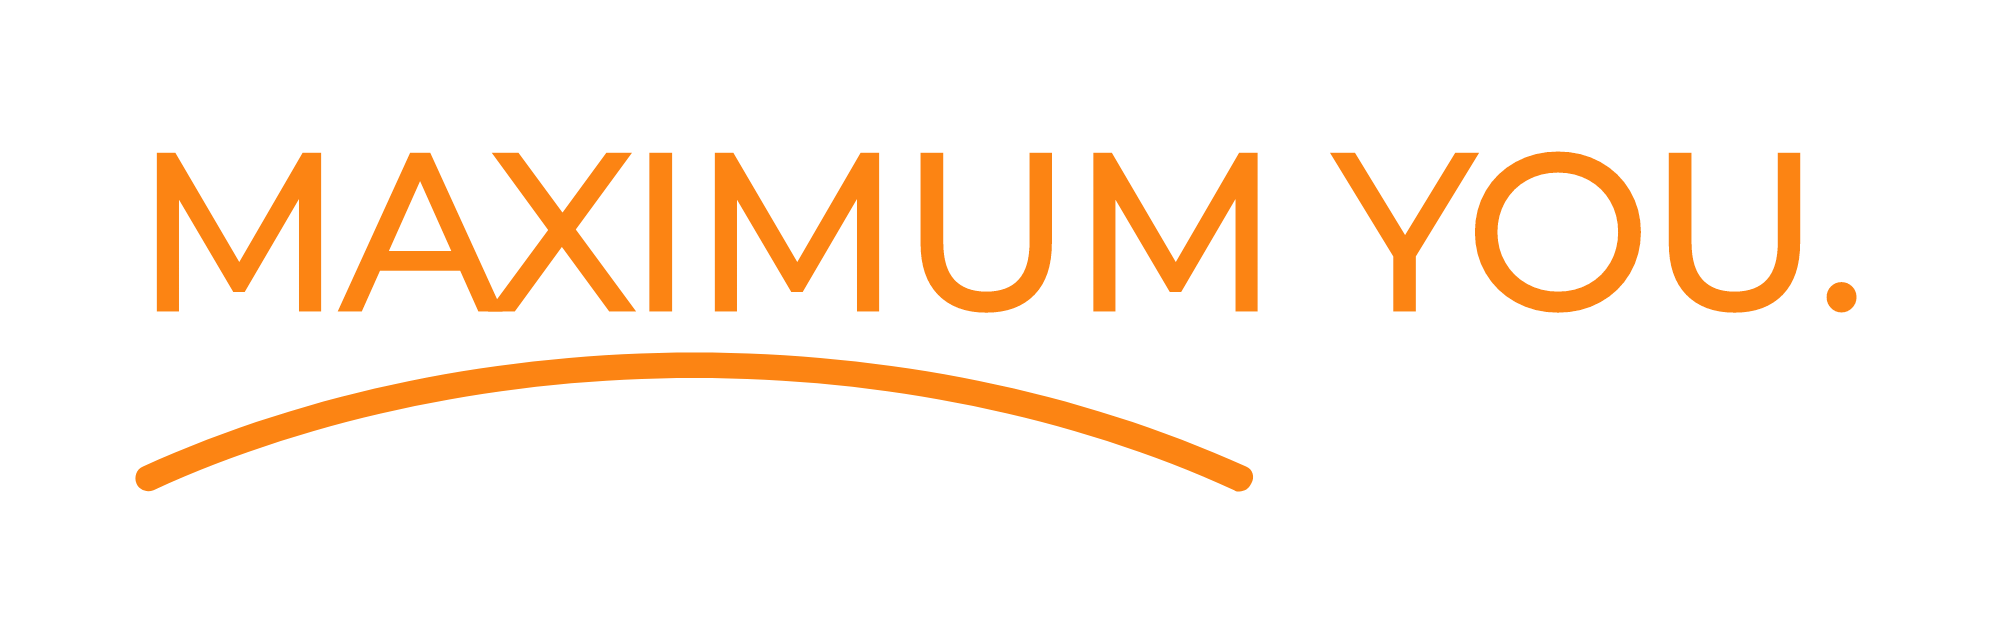 MAXIMUM YOU.-logo.png